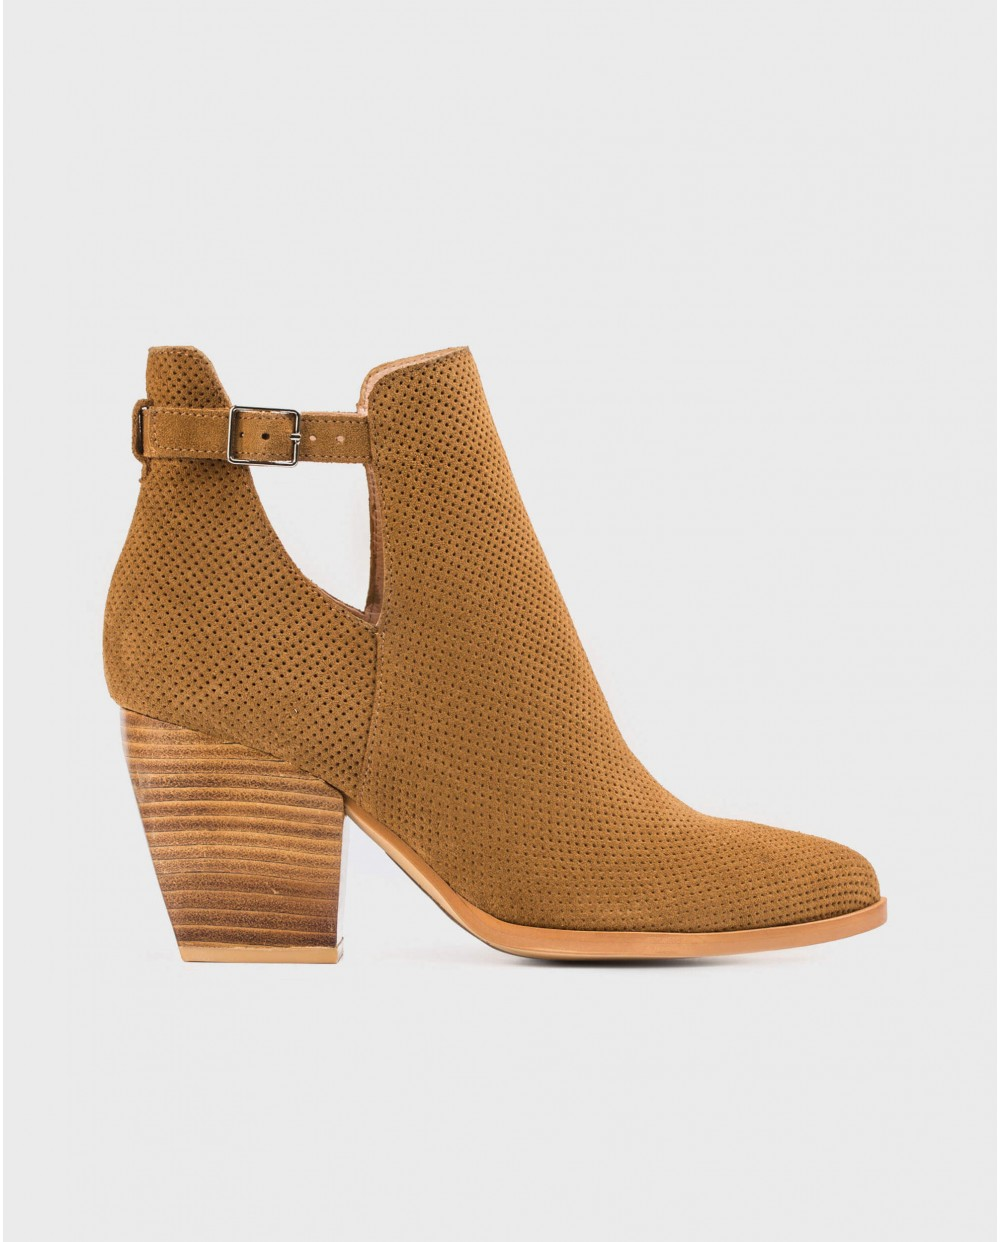 Wonders-Women-Suede leather ankle boot with brogue detail